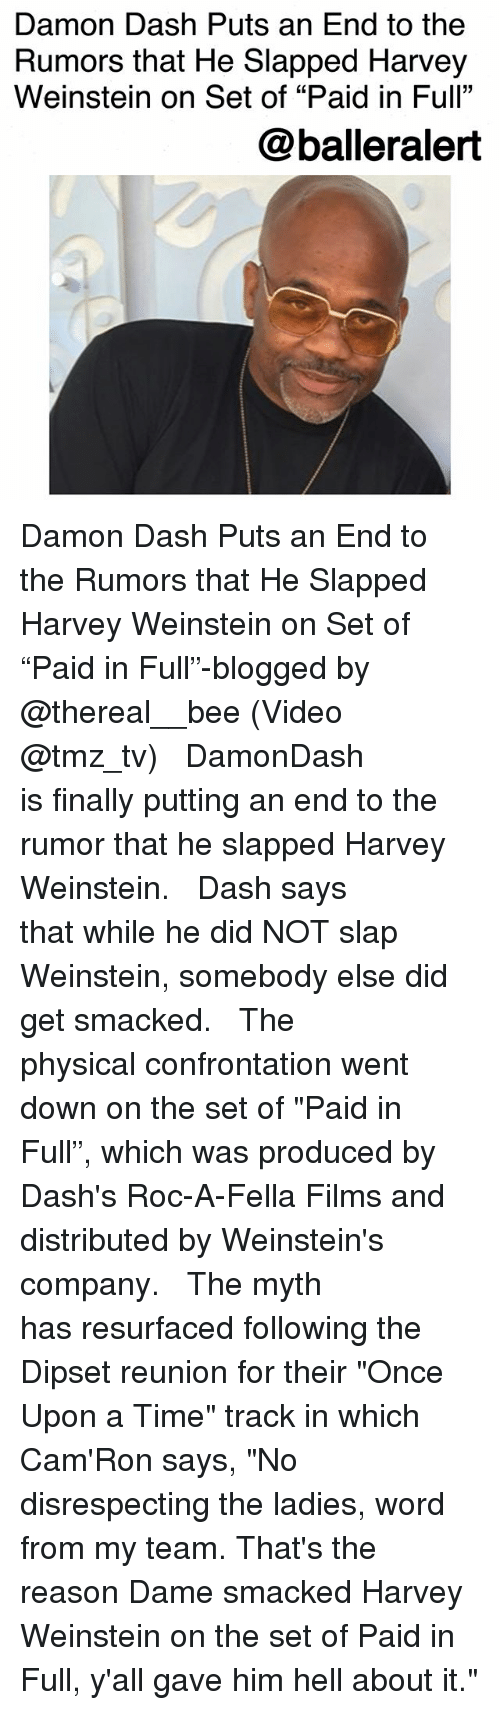 """confrontation: Damon Dash Puts an End to the  Rumors that He Slapped Harvey  Weinstein on Set of """"Paid in Full""""  @balleralert Damon Dash Puts an End to the Rumors that He Slapped Harvey Weinstein on Set of """"Paid in Full""""-blogged by @thereal__bee (Video @tmz_tv) ⠀⠀⠀⠀⠀⠀⠀⠀⠀ ⠀⠀ DamonDash is finally putting an end to the rumor that he slapped Harvey Weinstein. ⠀⠀⠀⠀⠀⠀⠀⠀⠀ ⠀⠀ Dash says that while he did NOT slap Weinstein, somebody else did get smacked. ⠀⠀⠀⠀⠀⠀⠀⠀⠀ ⠀⠀ The physical confrontation went down on the set of """"Paid in Full"""", which was produced by Dash's Roc-A-Fella Films and distributed by Weinstein's company. ⠀⠀⠀⠀⠀⠀⠀⠀⠀ ⠀⠀ The myth has resurfaced following the Dipset reunion for their """"Once Upon a Time"""" track in which Cam'Ron says, """"No disrespecting the ladies, word from my team. That's the reason Dame smacked Harvey Weinstein on the set of Paid in Full, y'all gave him hell about it."""""""